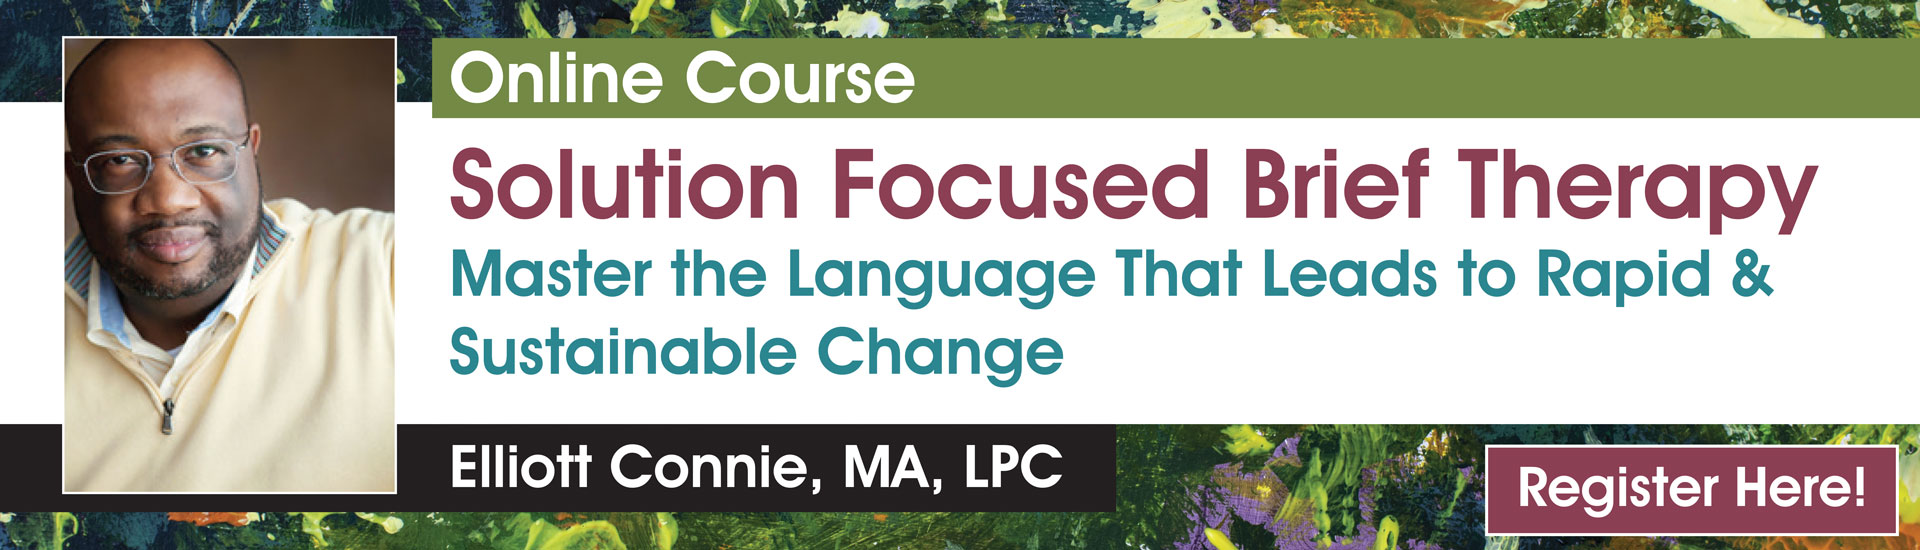 Solution Focused Brief Therapy: Master the Language that Leads to Rapid & Sustainable Change